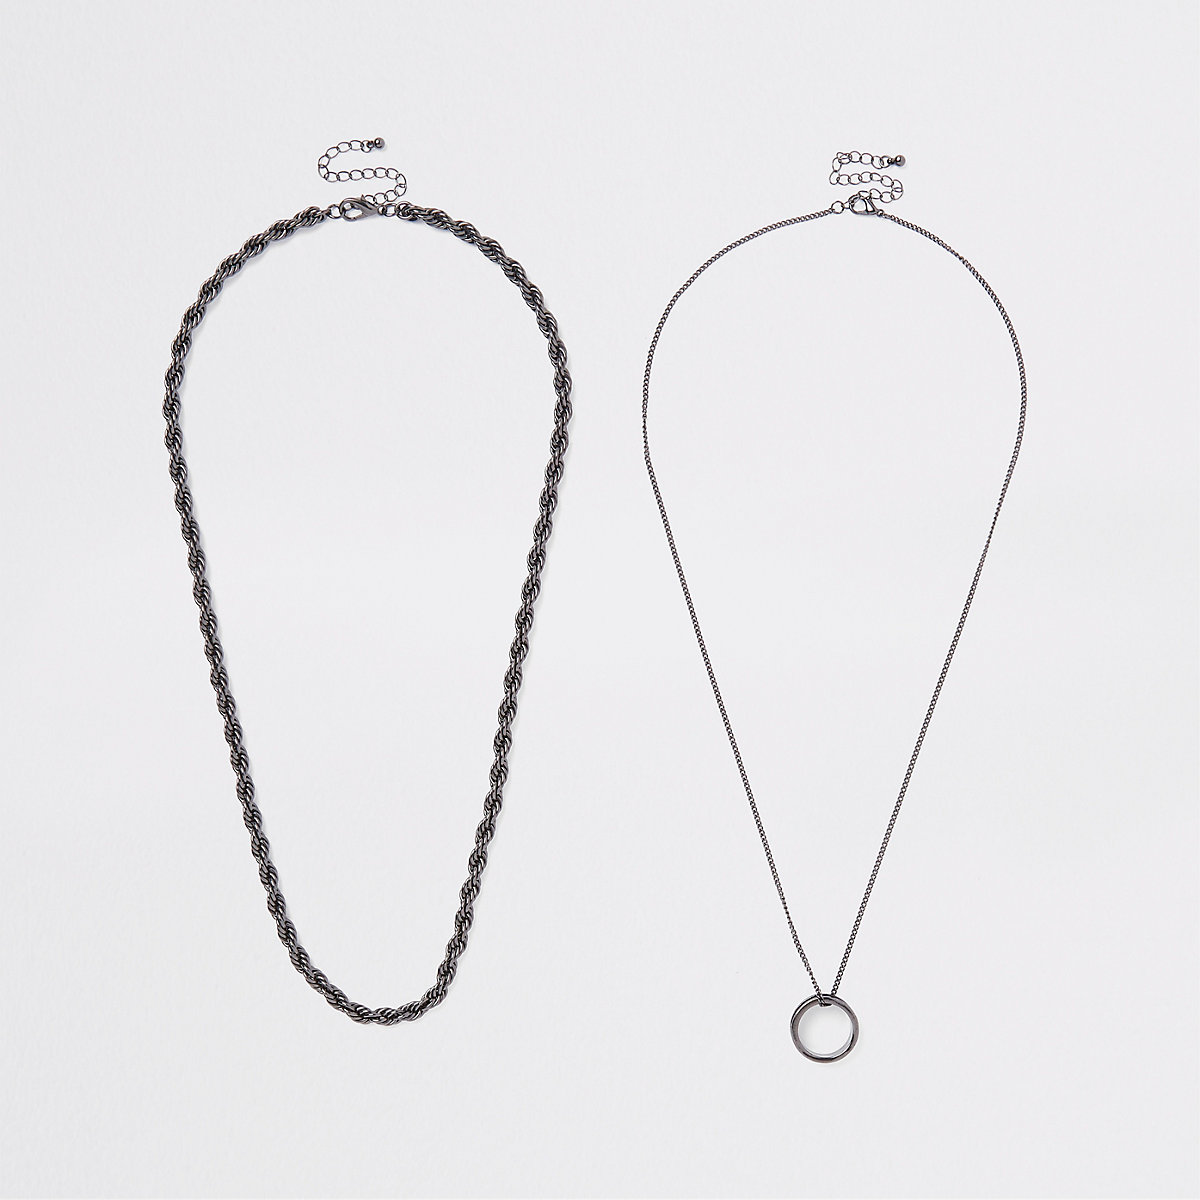 Black ring pendant necklace multipack